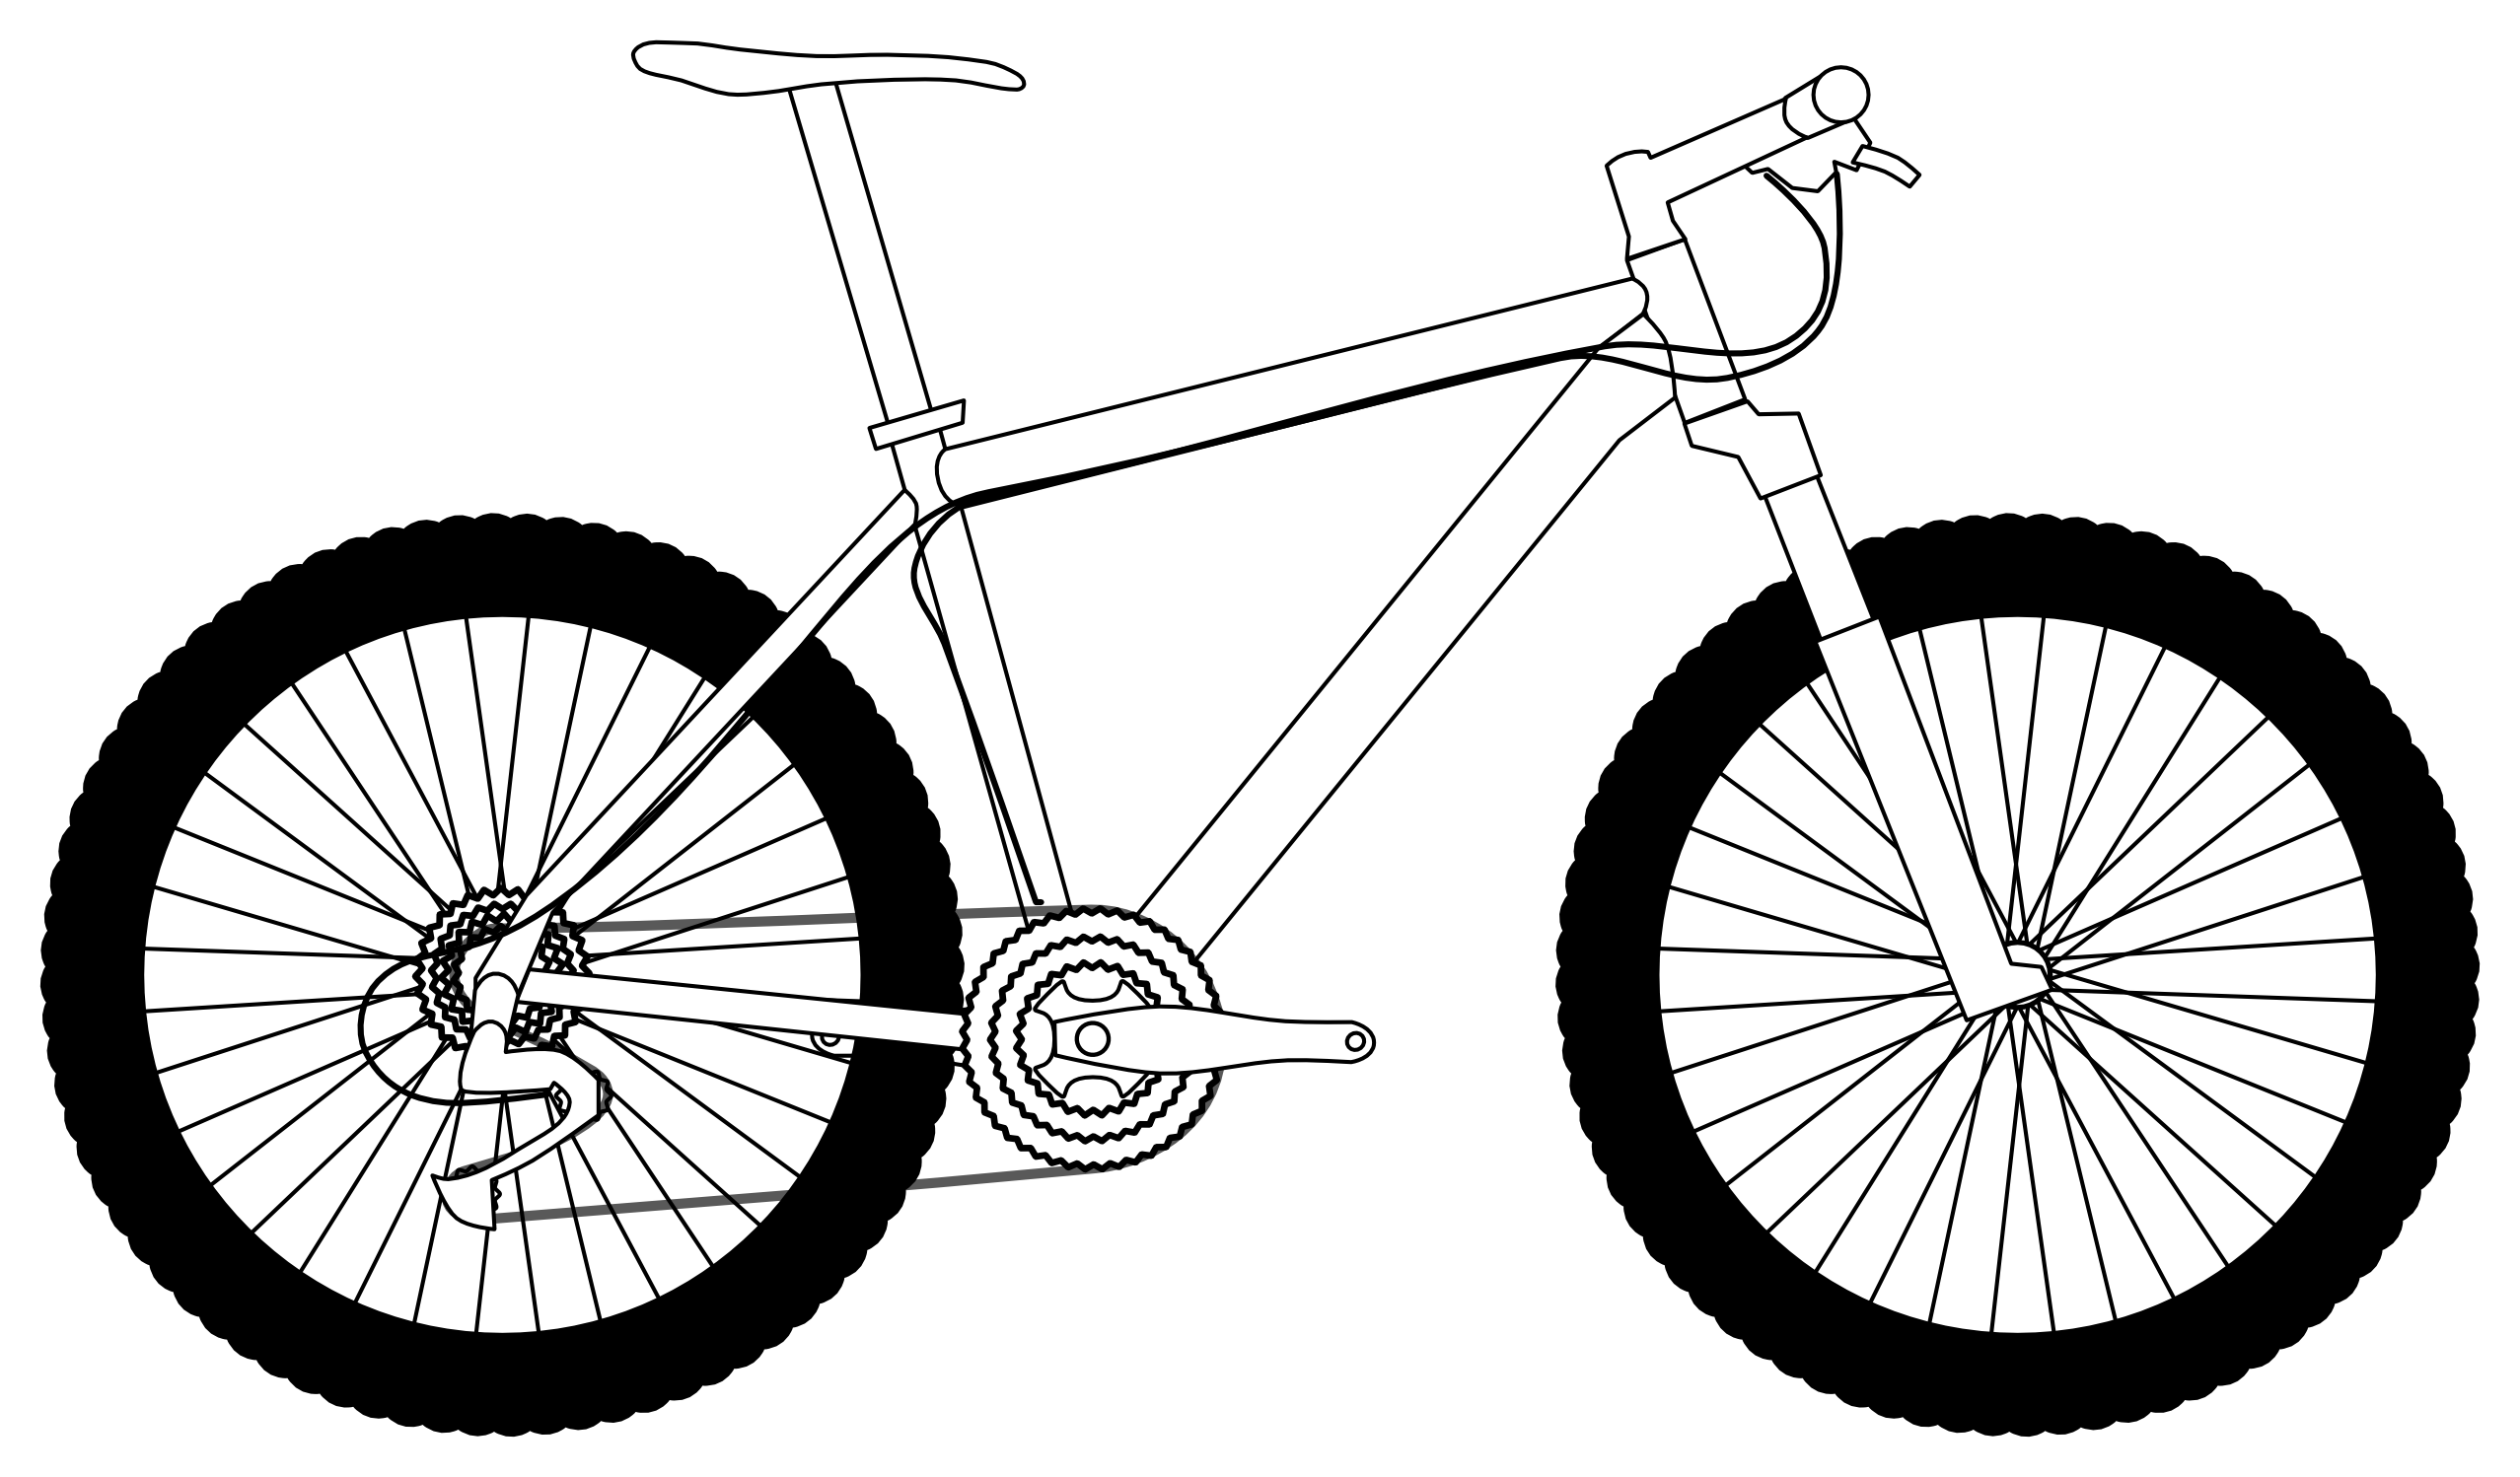 clipart royalty free download Bike silhouette clip art. Biking clipart vintage bicycle.